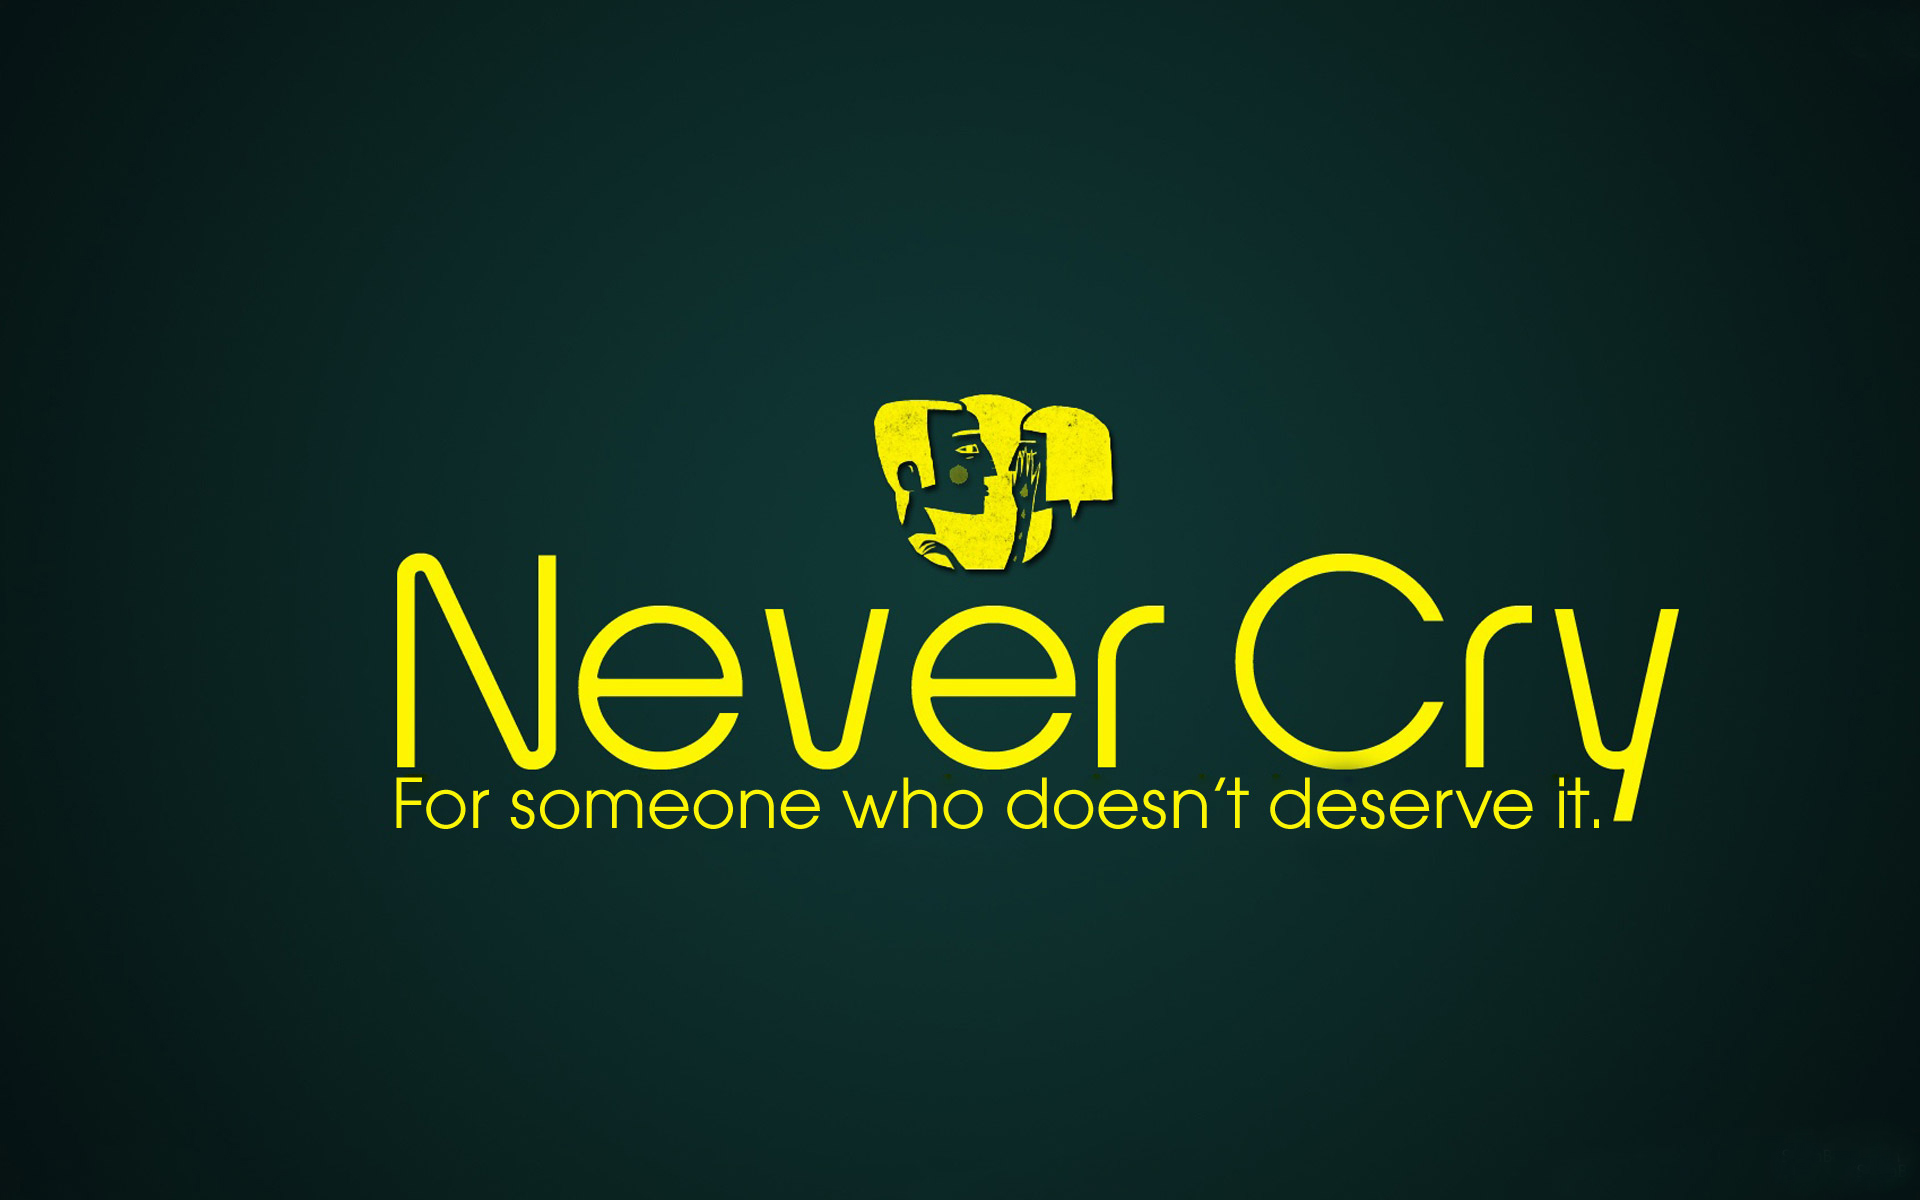 Quotes Wallpapers High Quality   Download Free